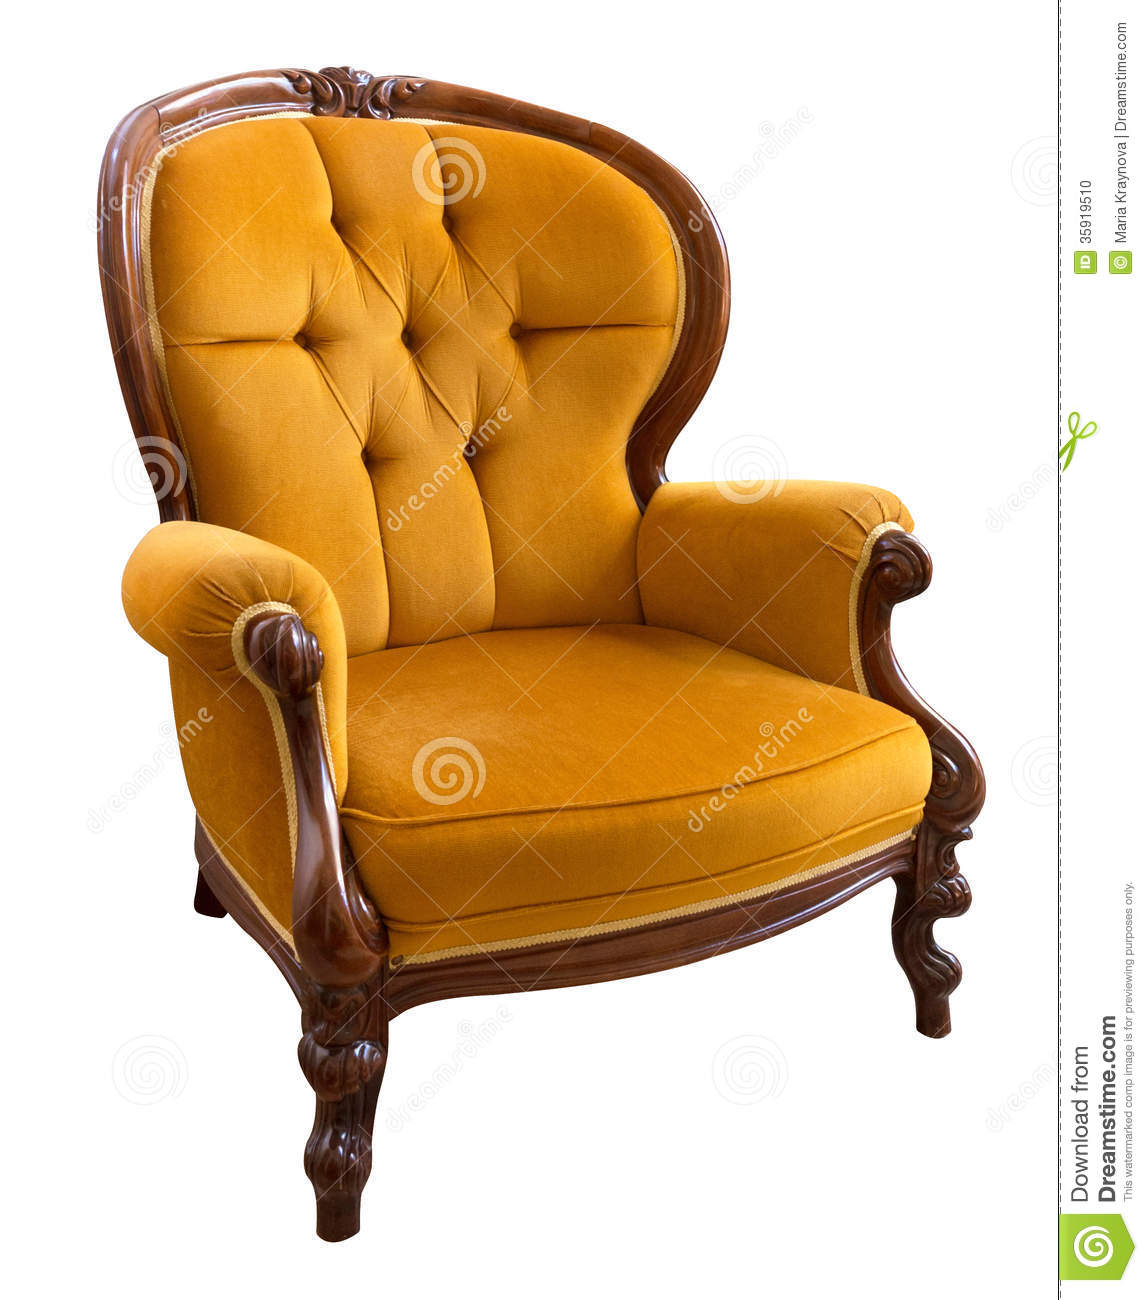 Vintage armchair stock photo image 35919510 for Armchair vintage